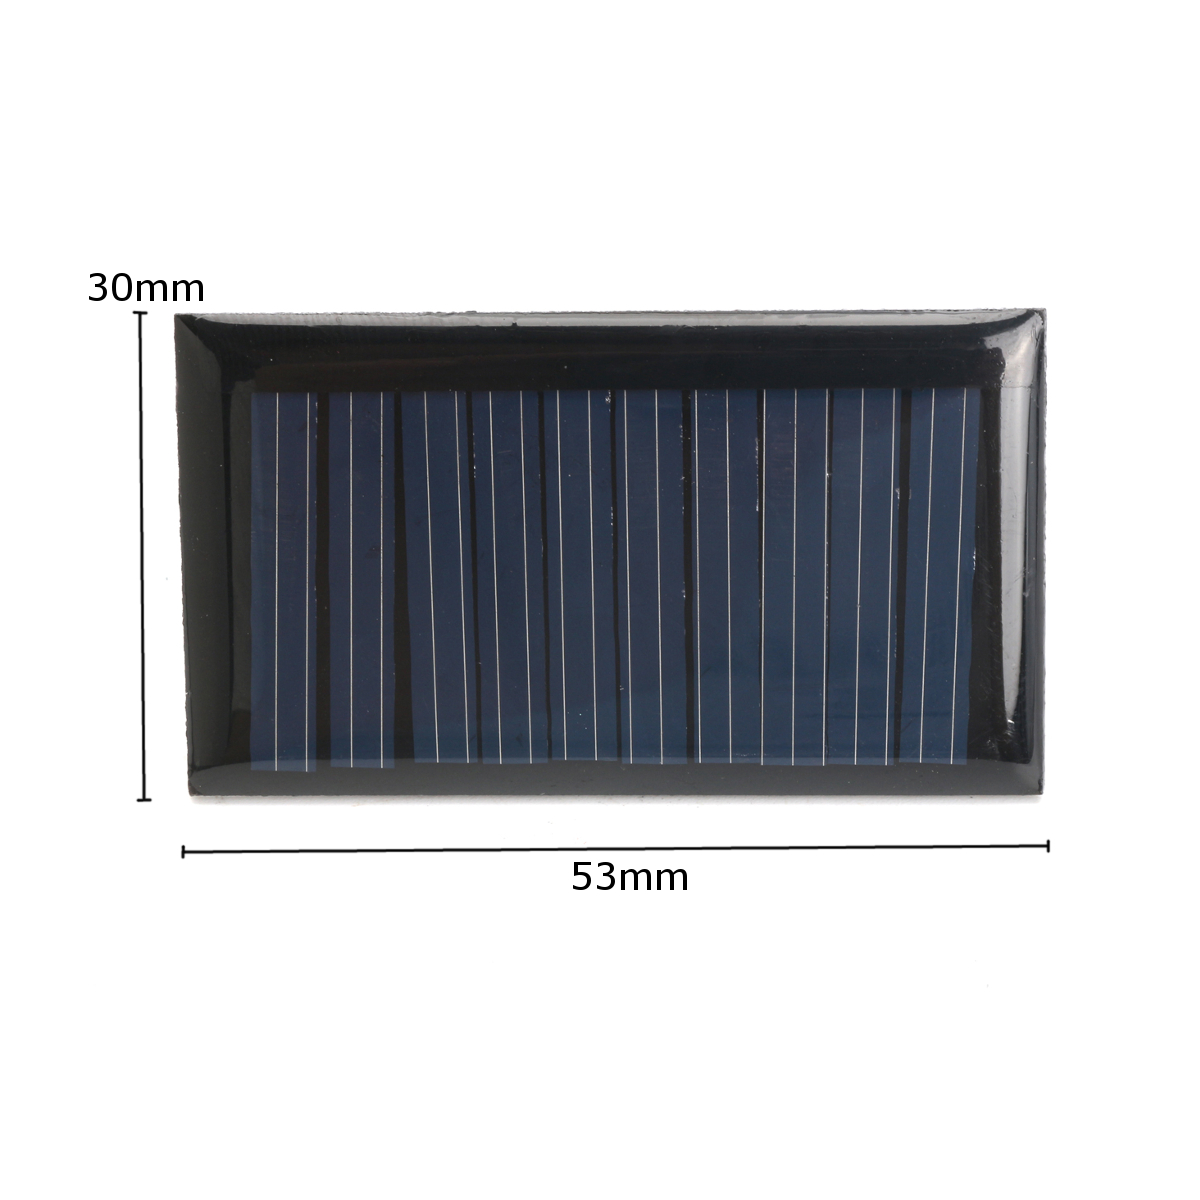 10Pcs 5V 30mA 53X30mm Micro Mini Small Power Solar Cells Panel For DIY Toy